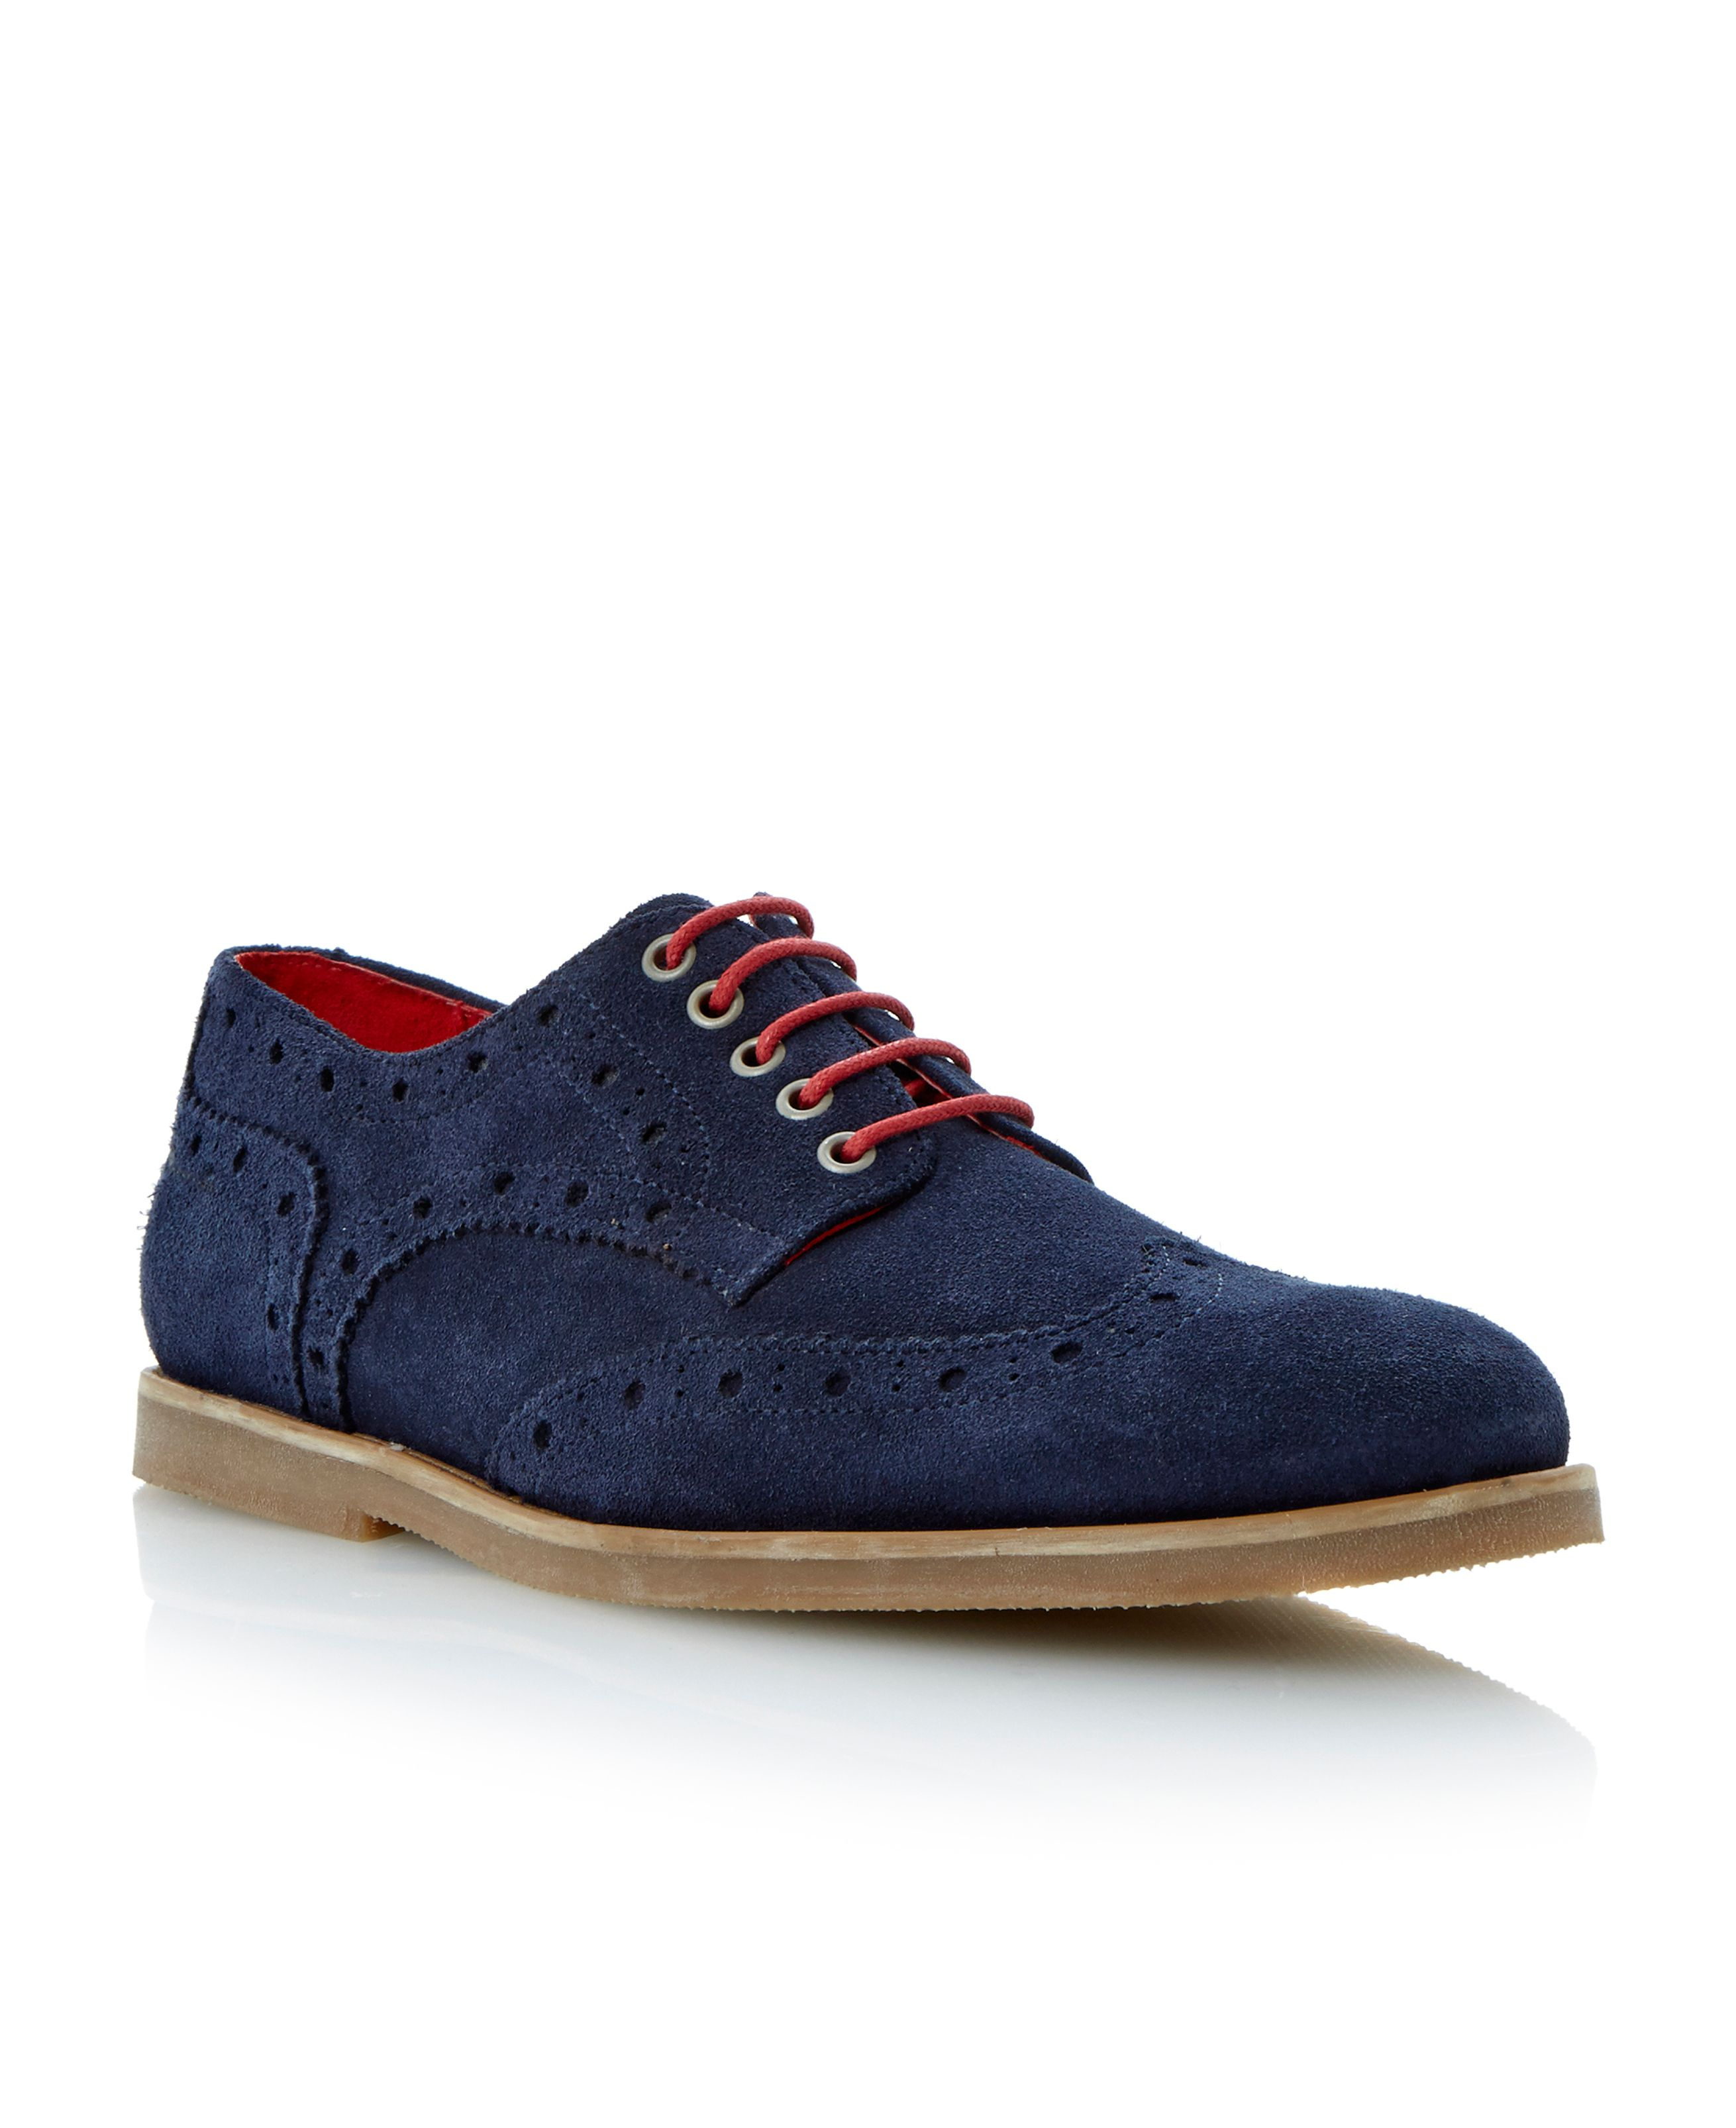 Brentwood lace up brogue desert shoes